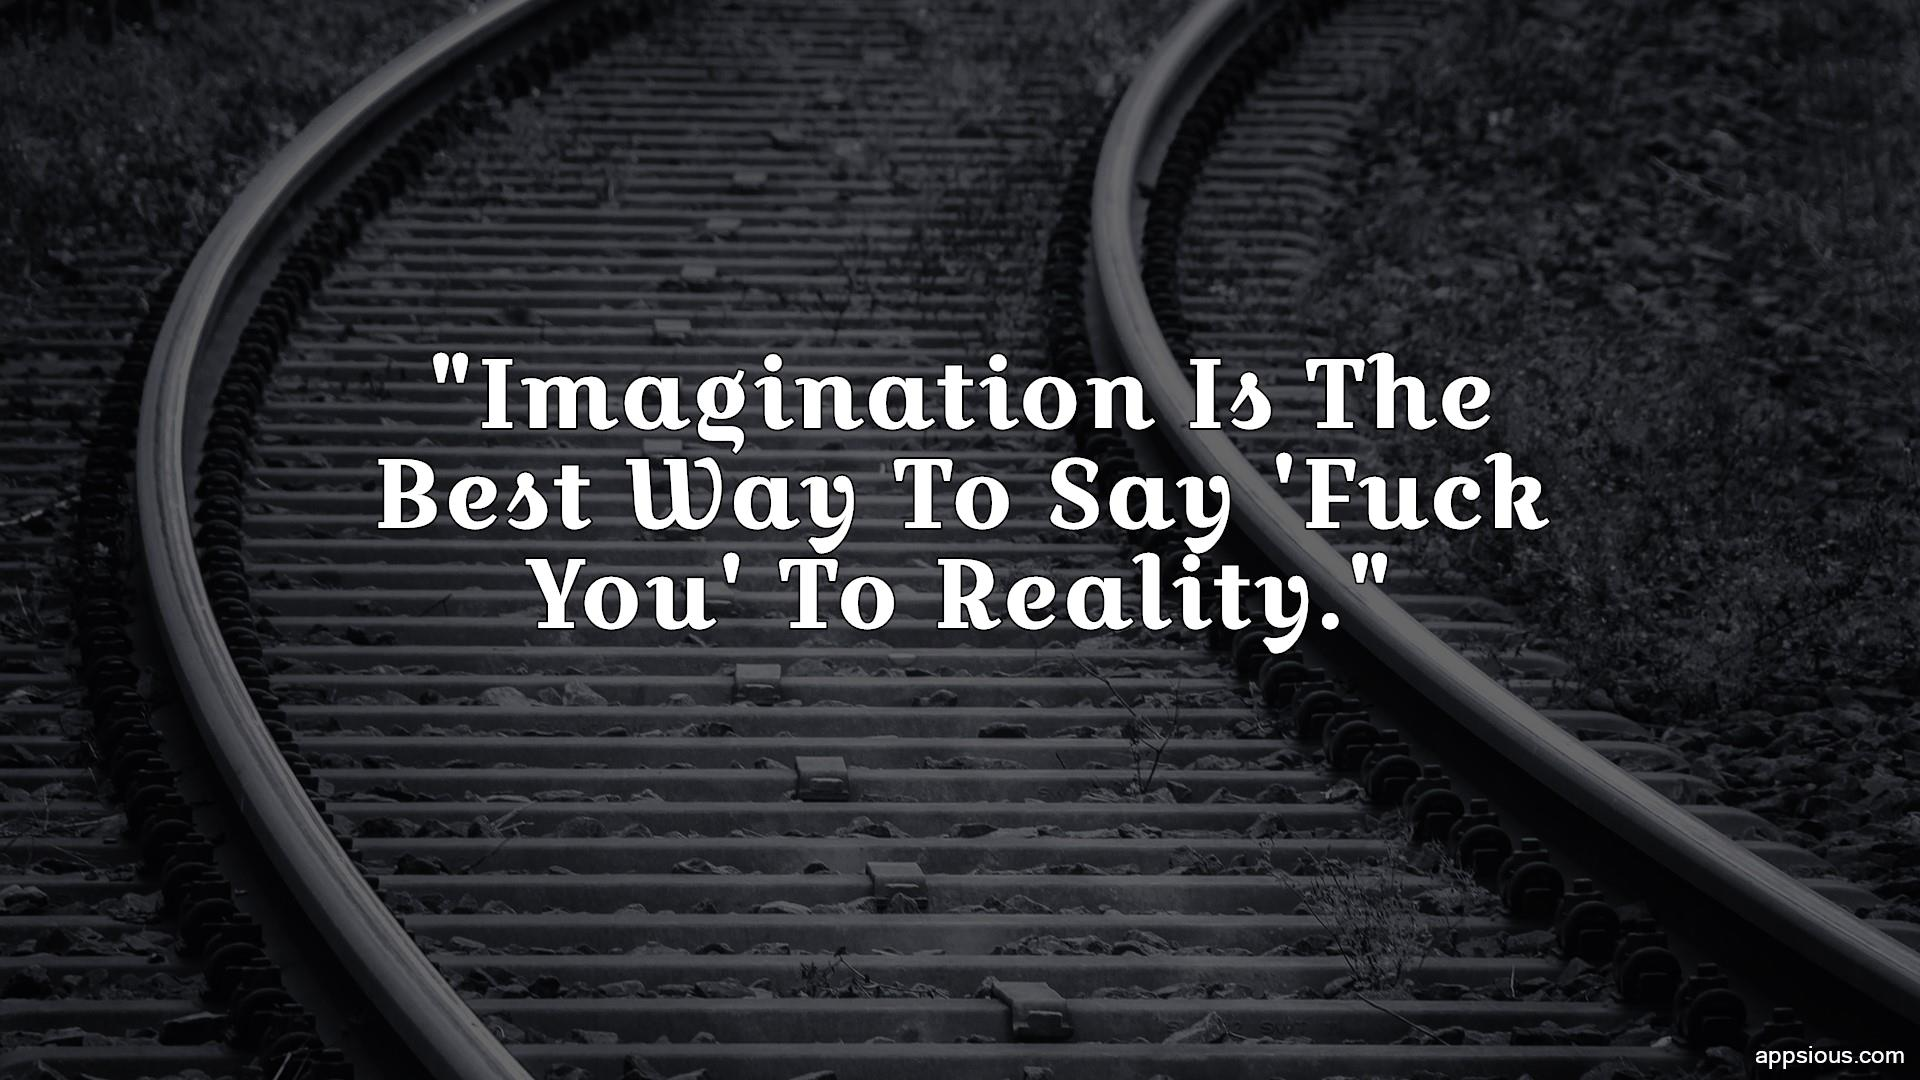 Imagination Is The Best Way To Say 'Fuck You' To Reality.